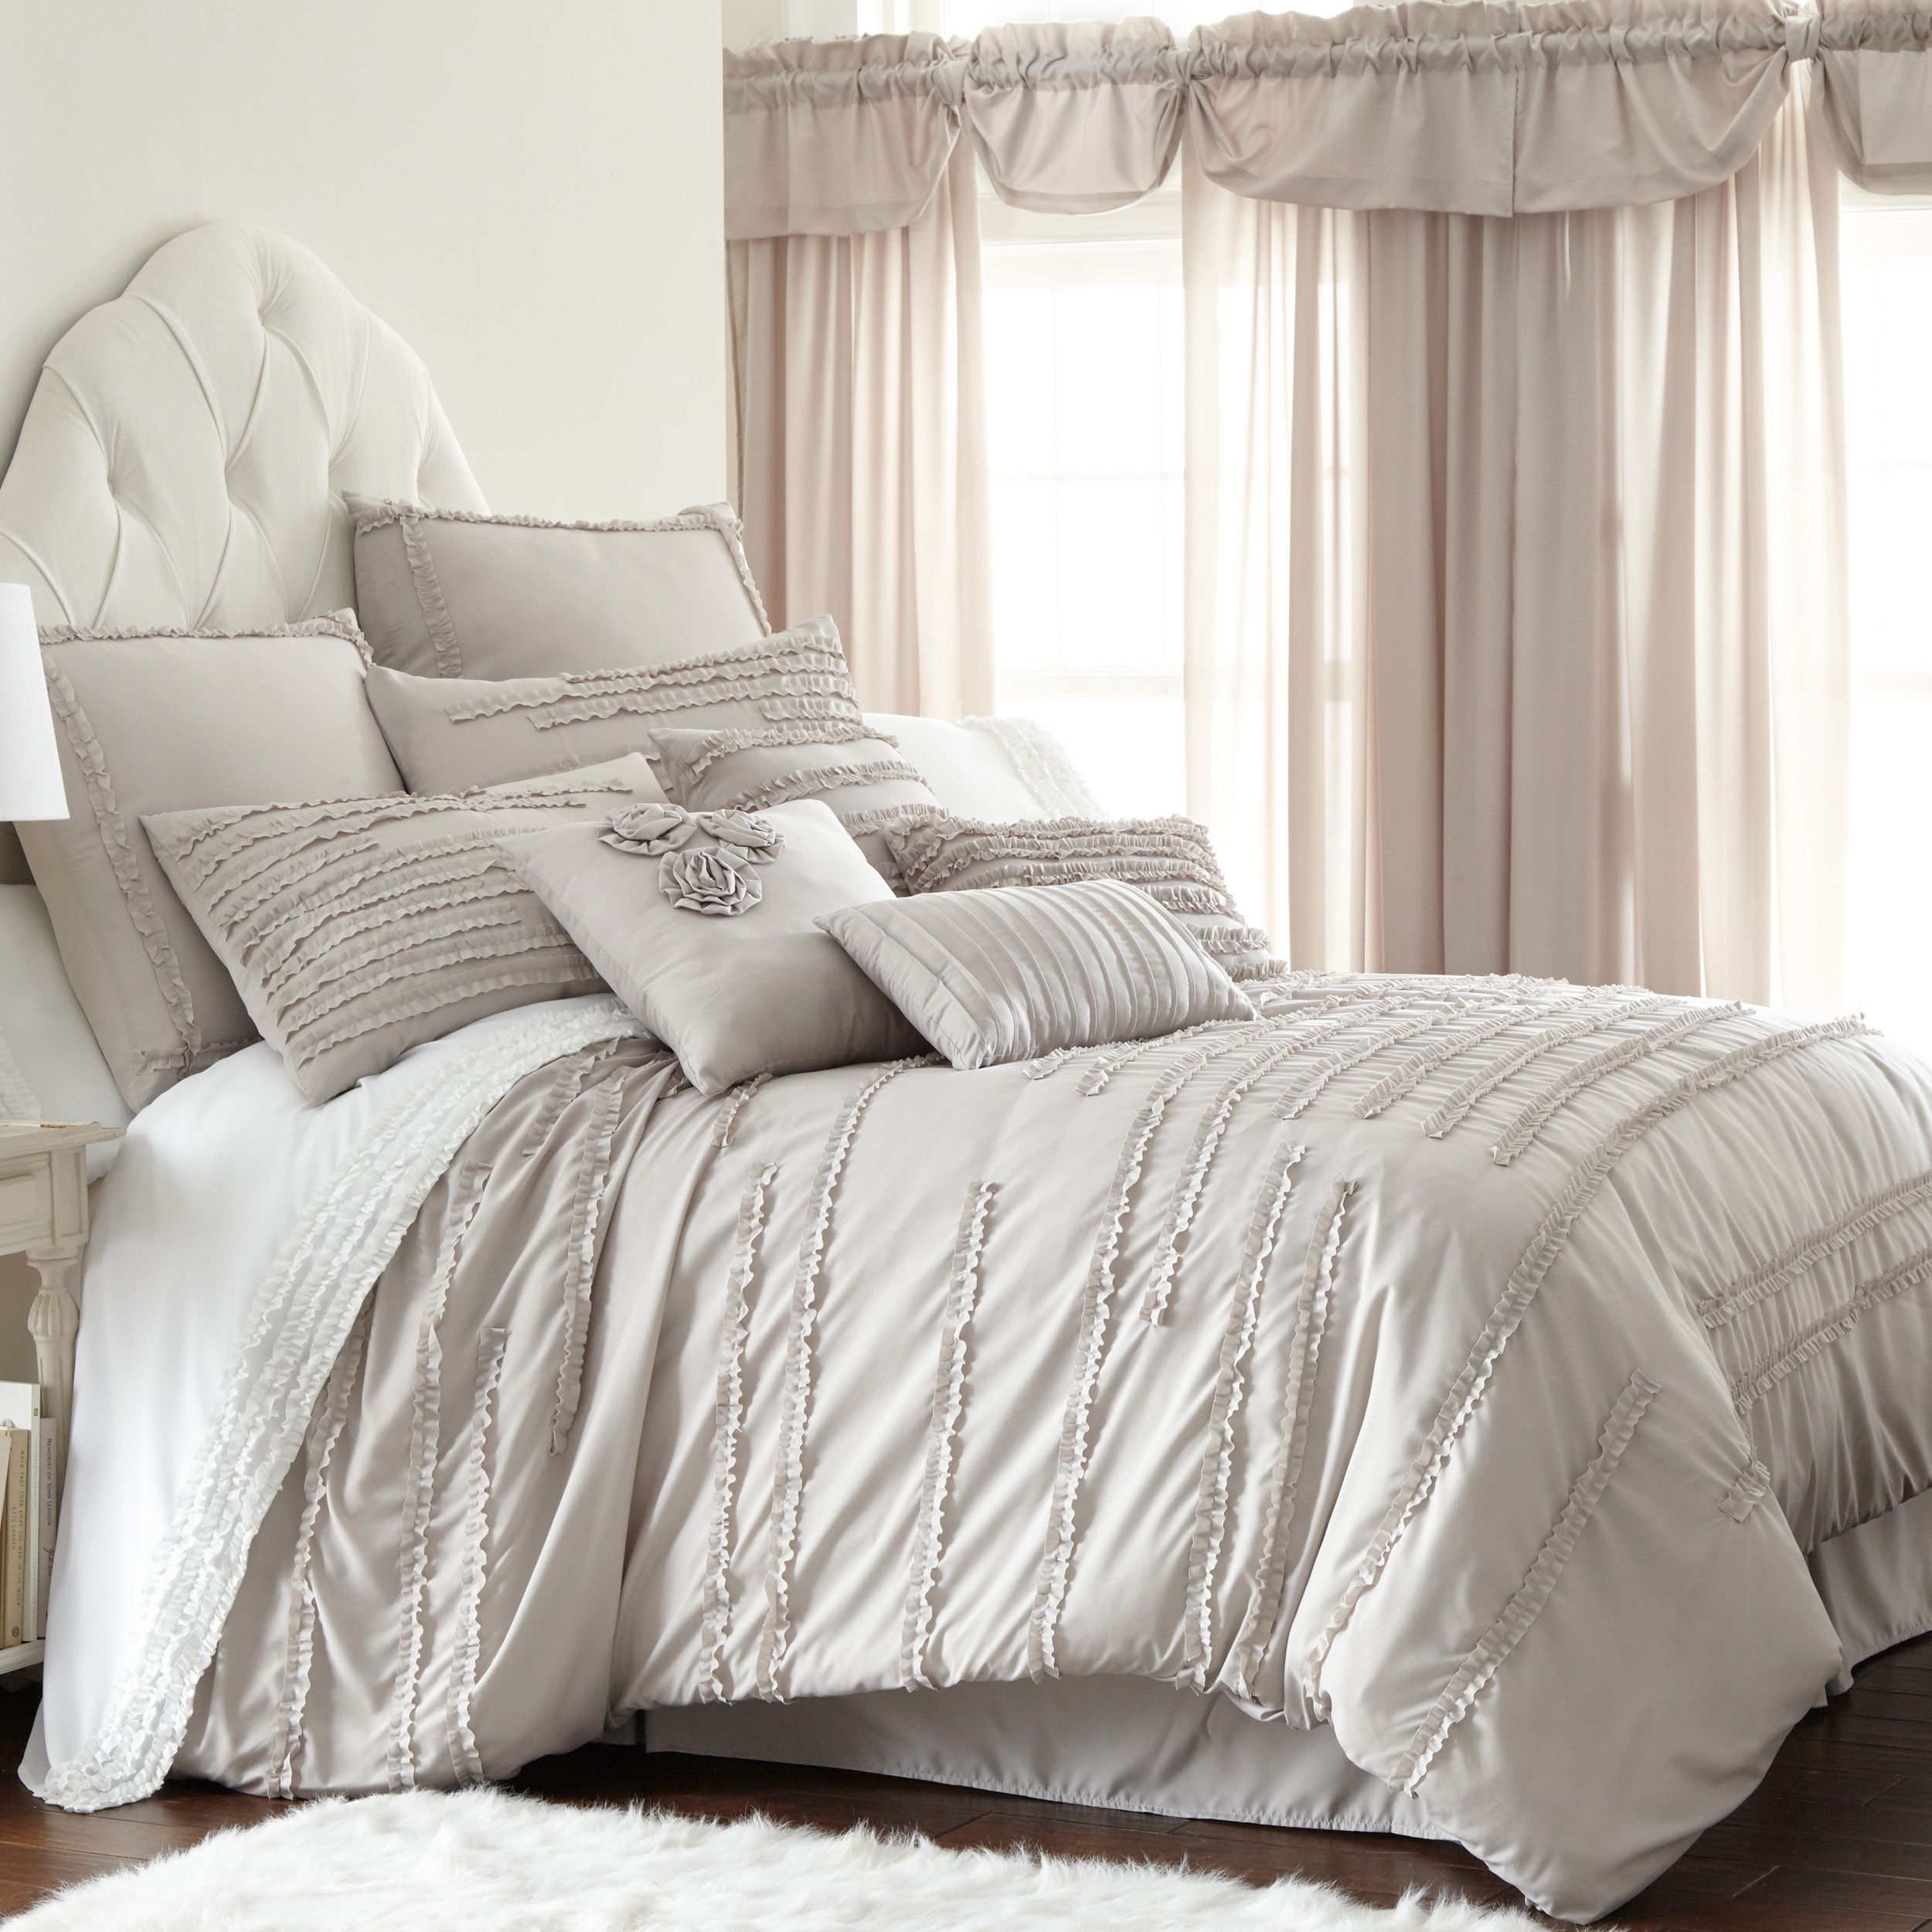 A Ruffled Look With A Rose Detail Adorns This Polyester Comforter